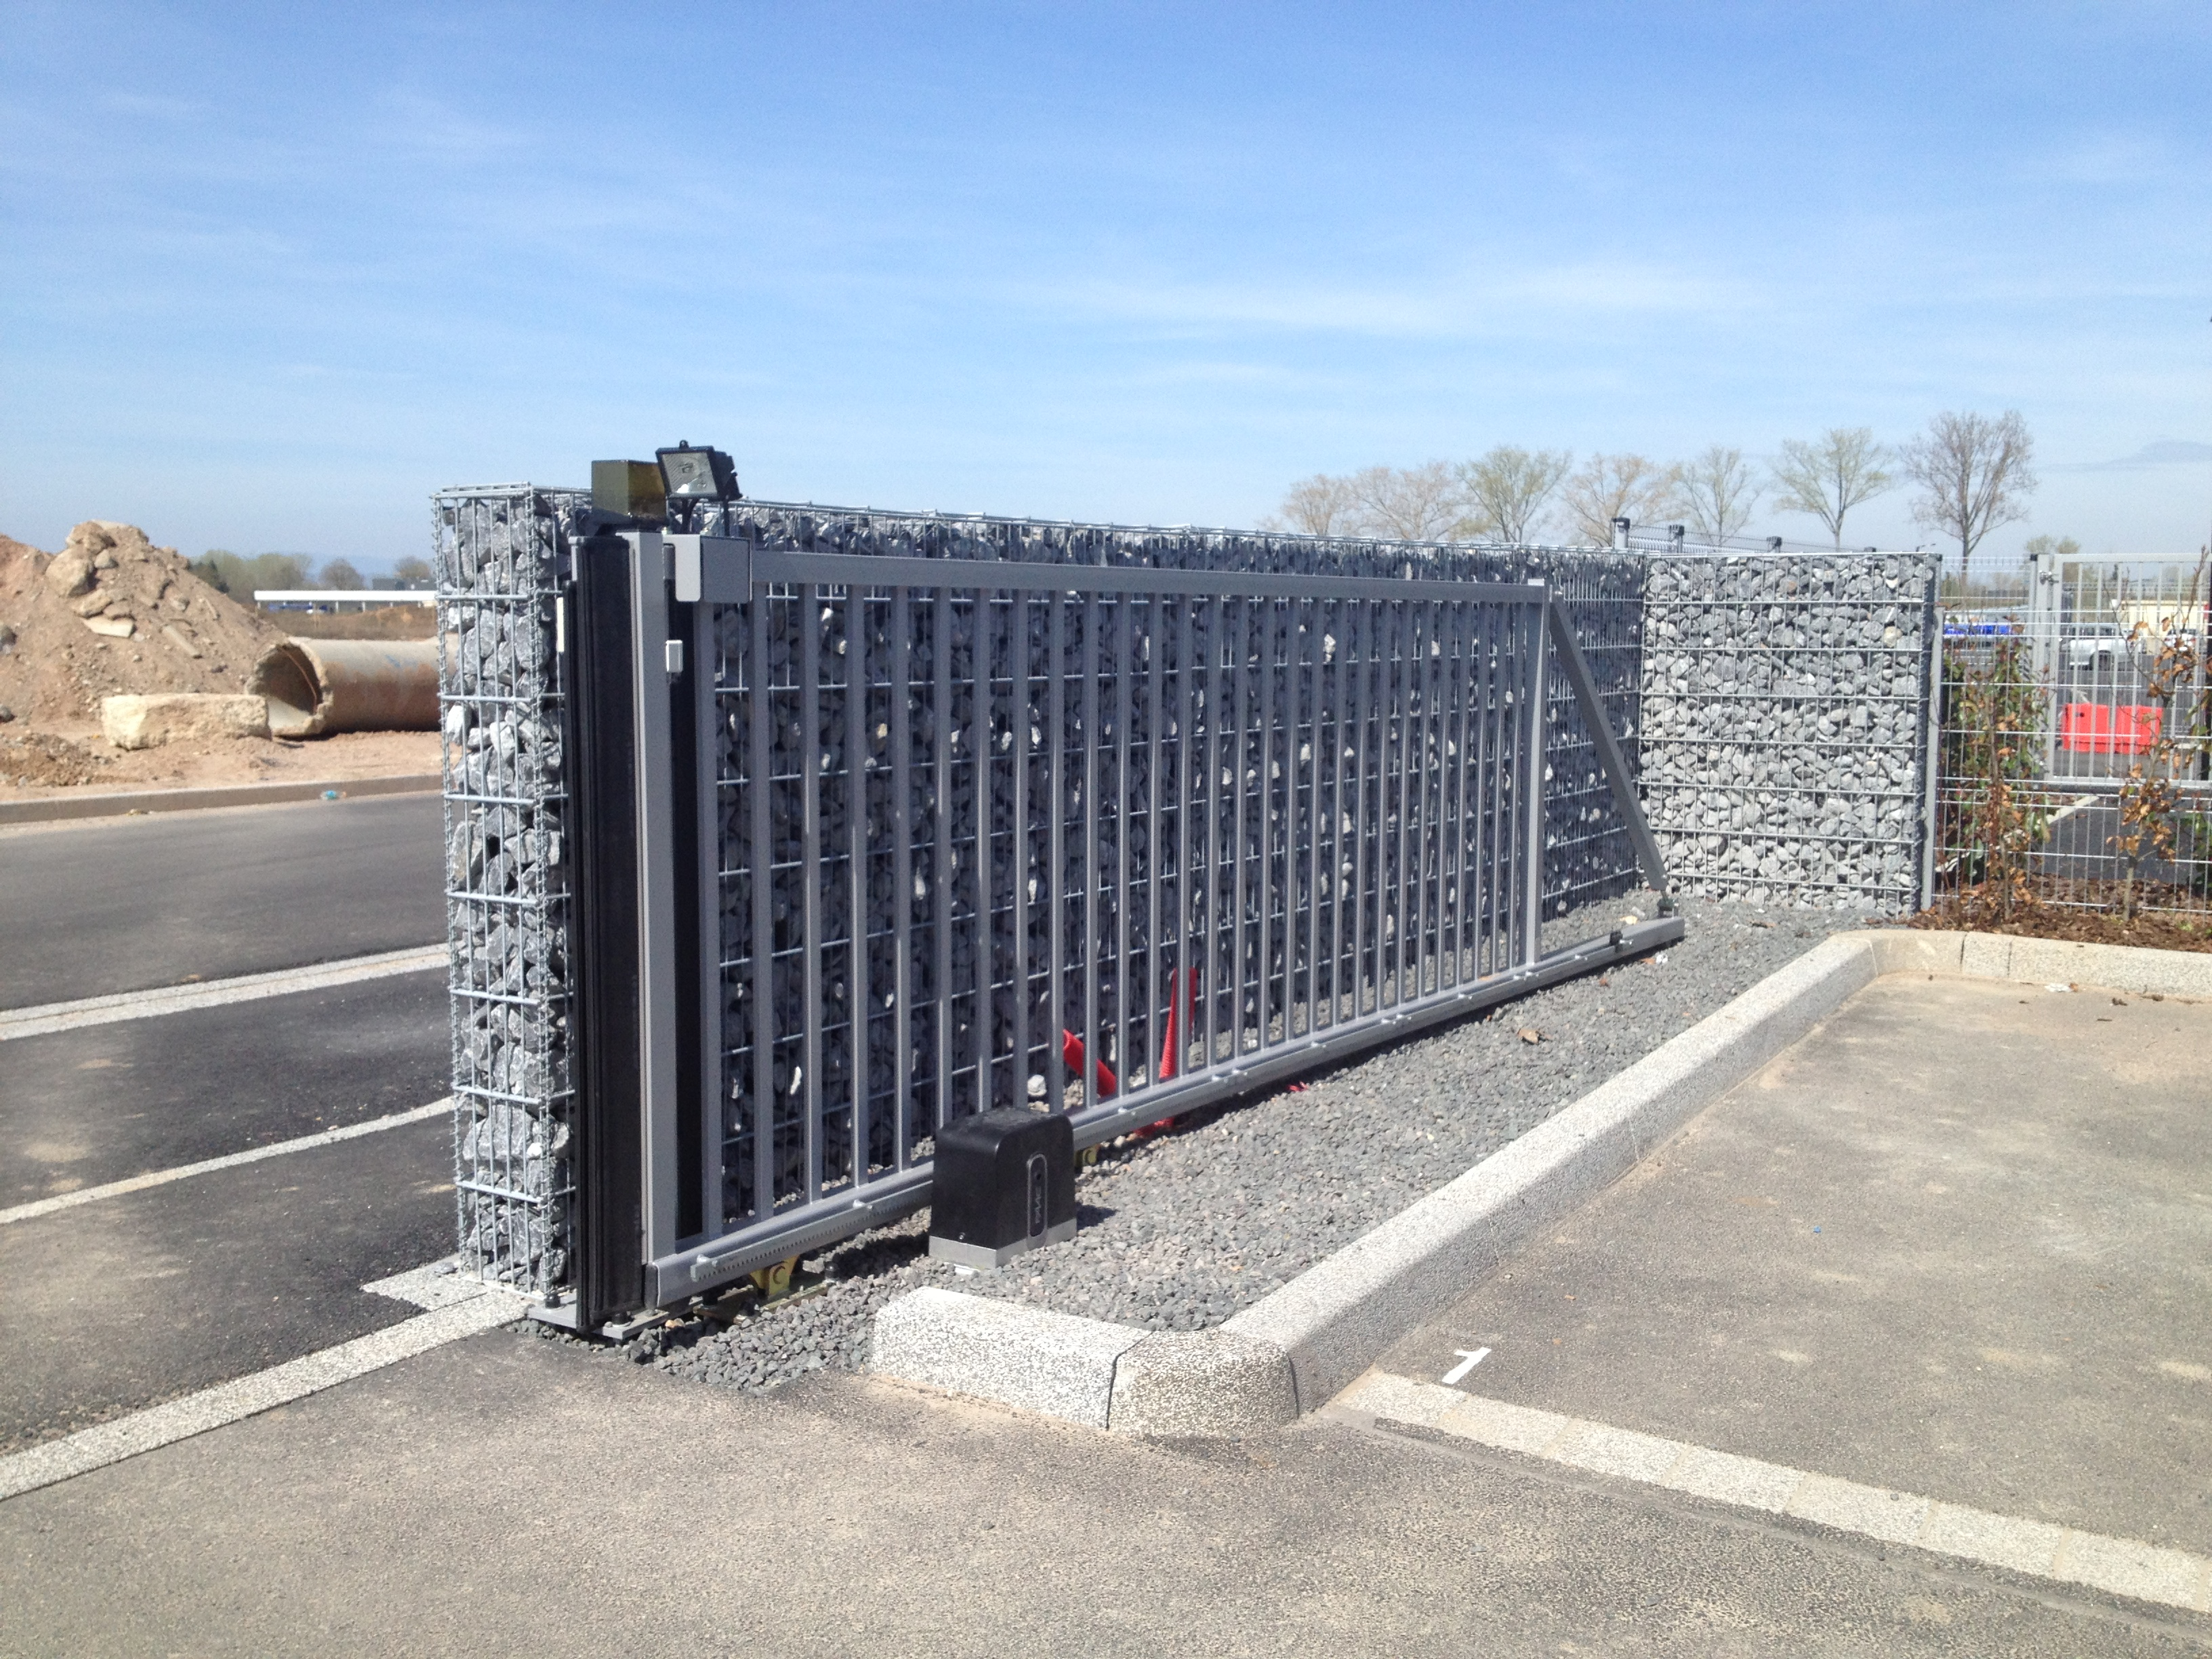 Grillages wunschel - Grillage pour gabion ...